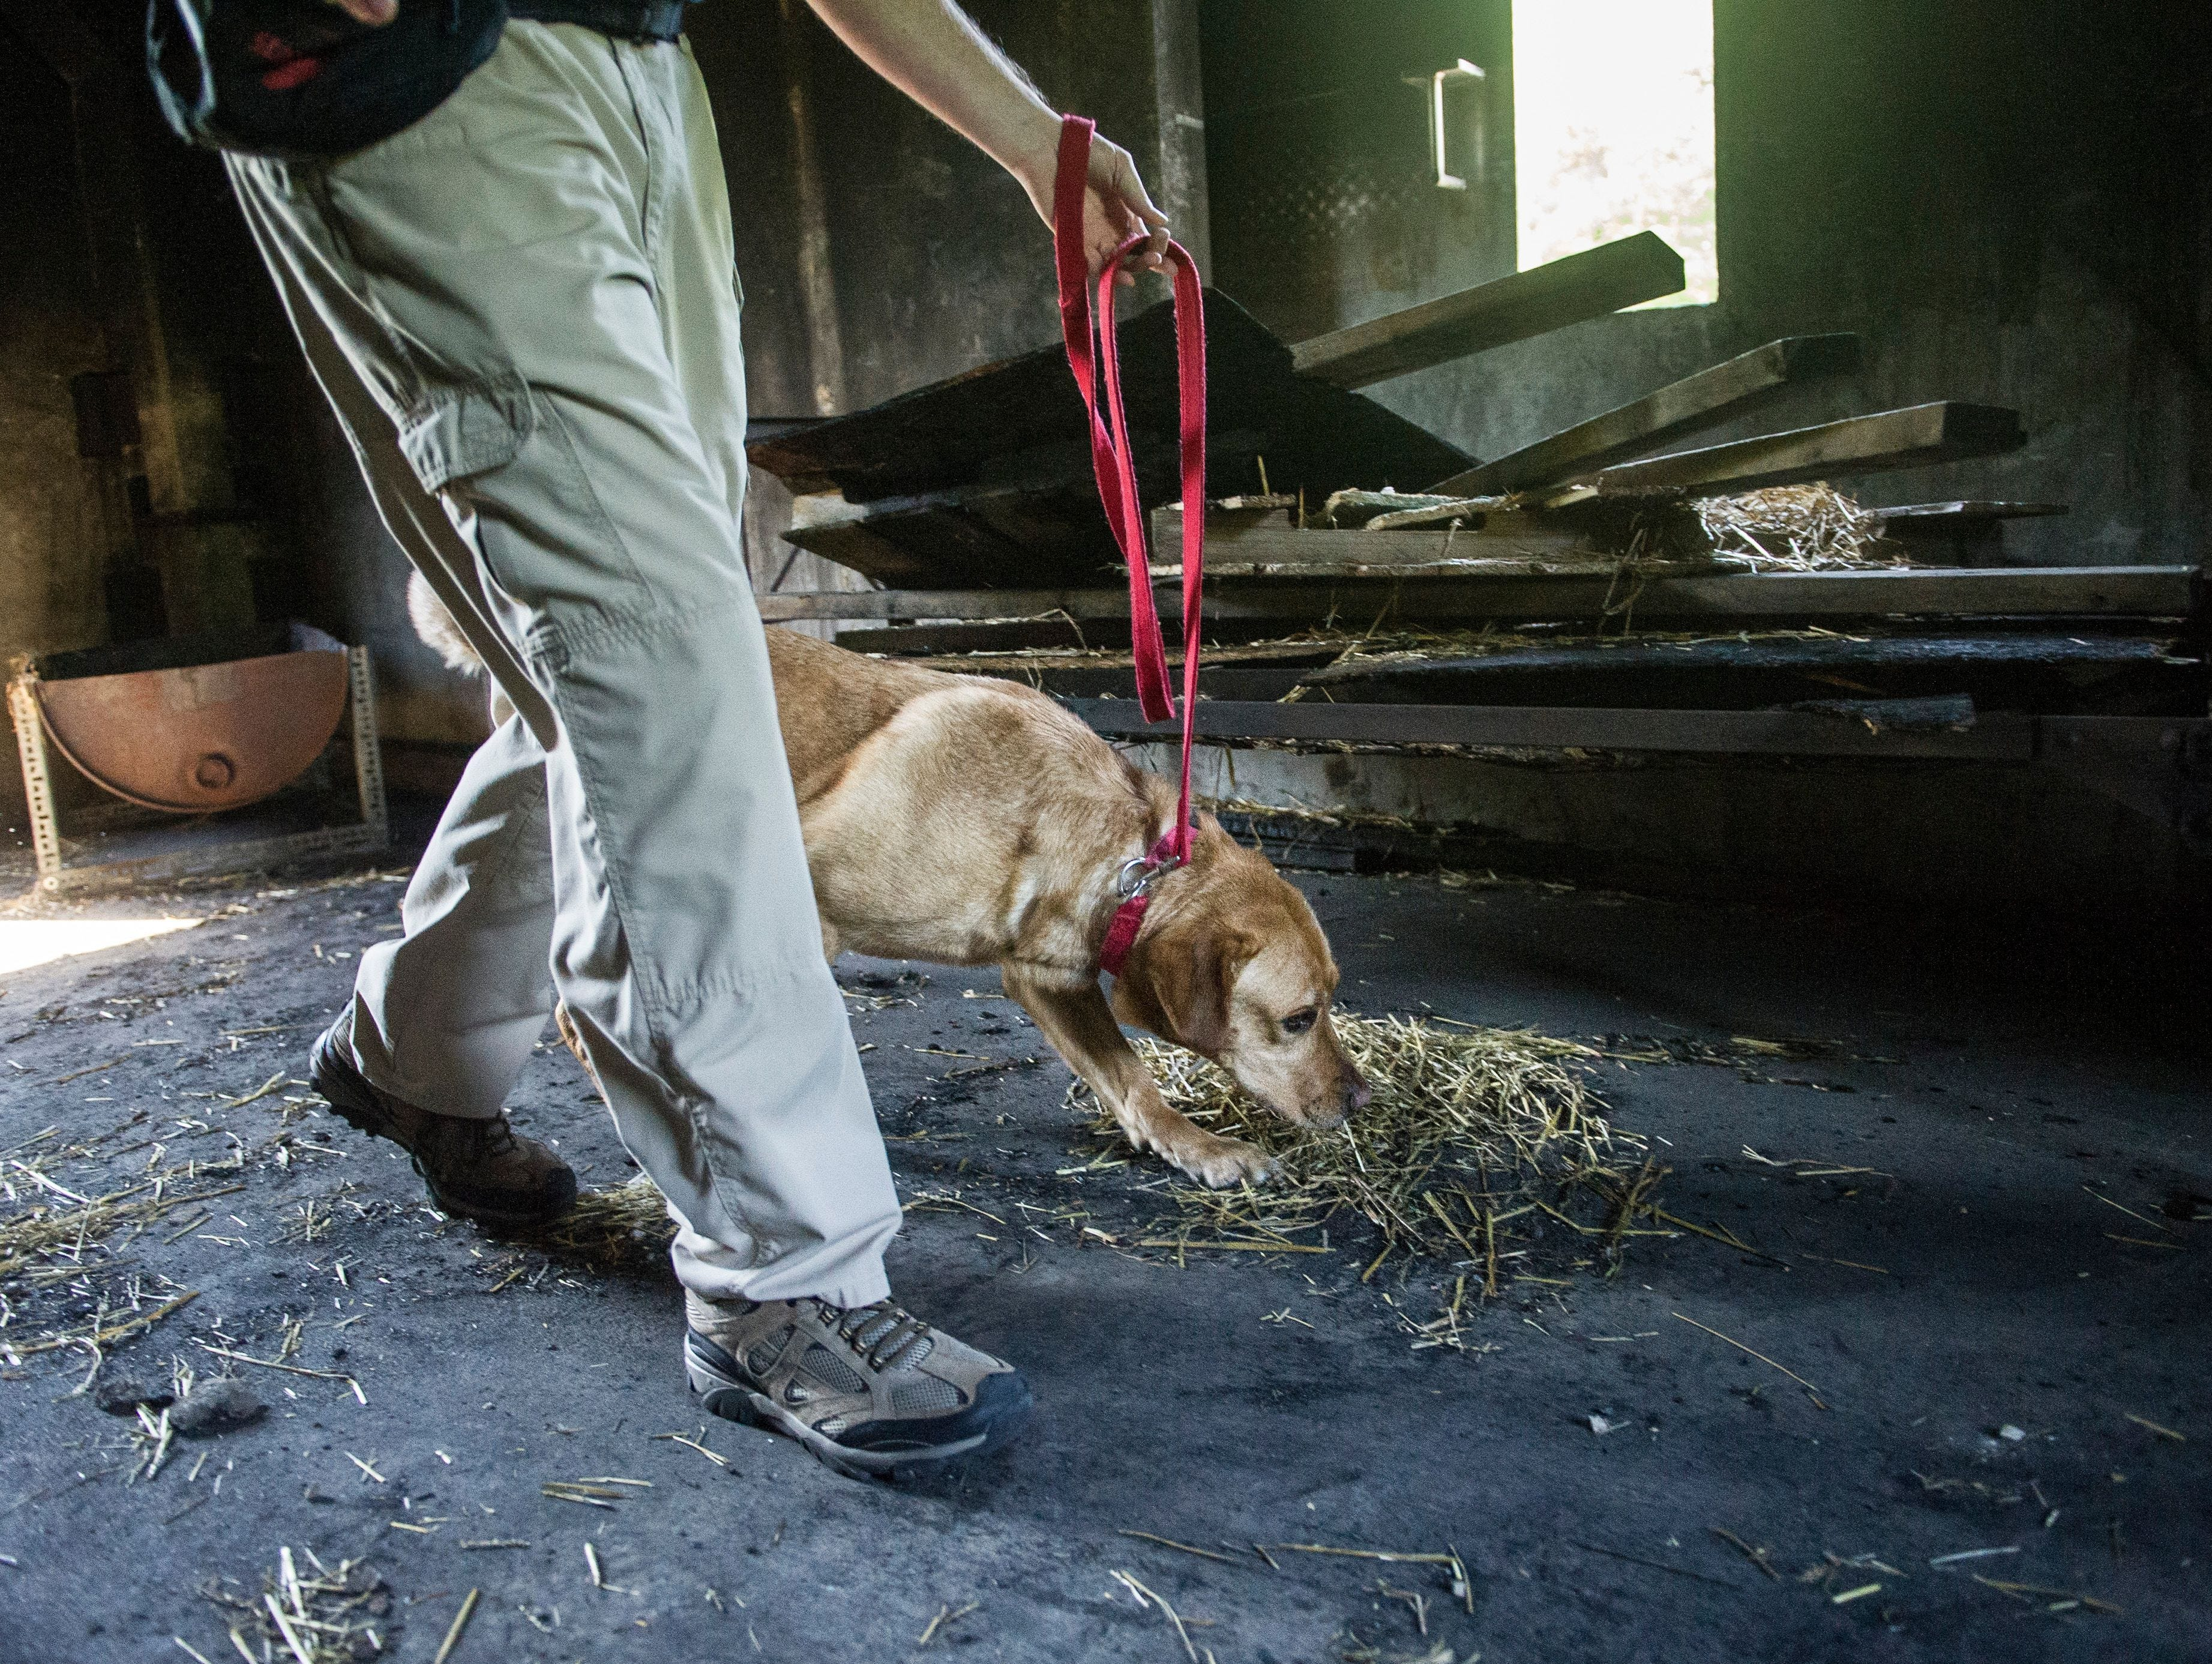 Danny Hill from New Bern, N.C. walks his partner Darby, an English Labrador retriever, through an arson investigation scenario during the Arson Dog recertification program hosted by the Evansville Fire Department on Wednesday, June 6.